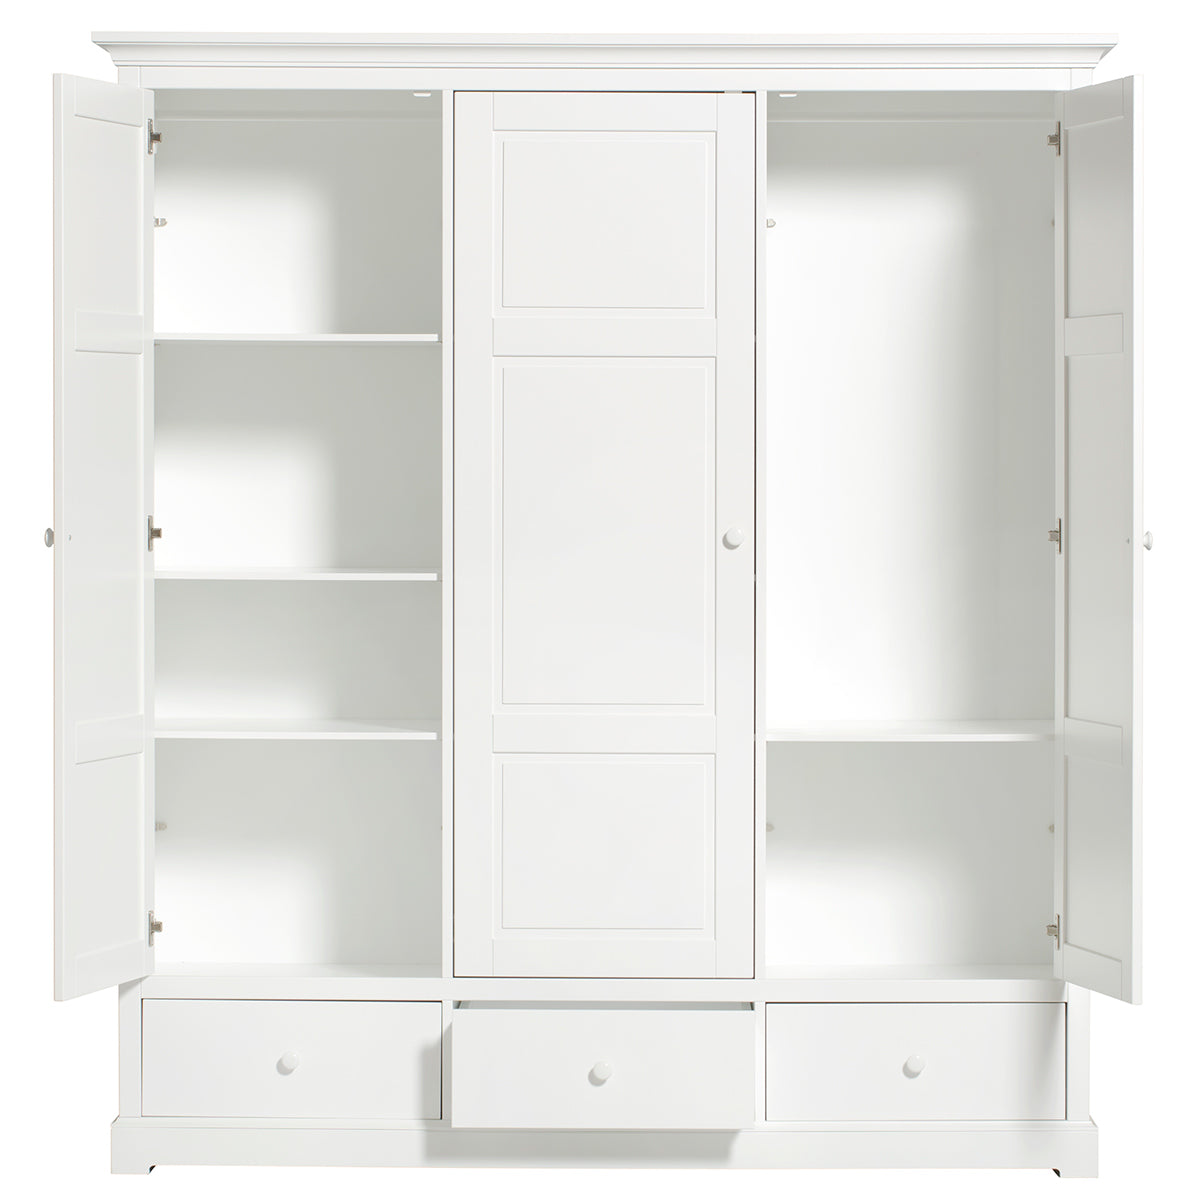 Oliver Furniture Kleiderschrank Seaside, 3-türig